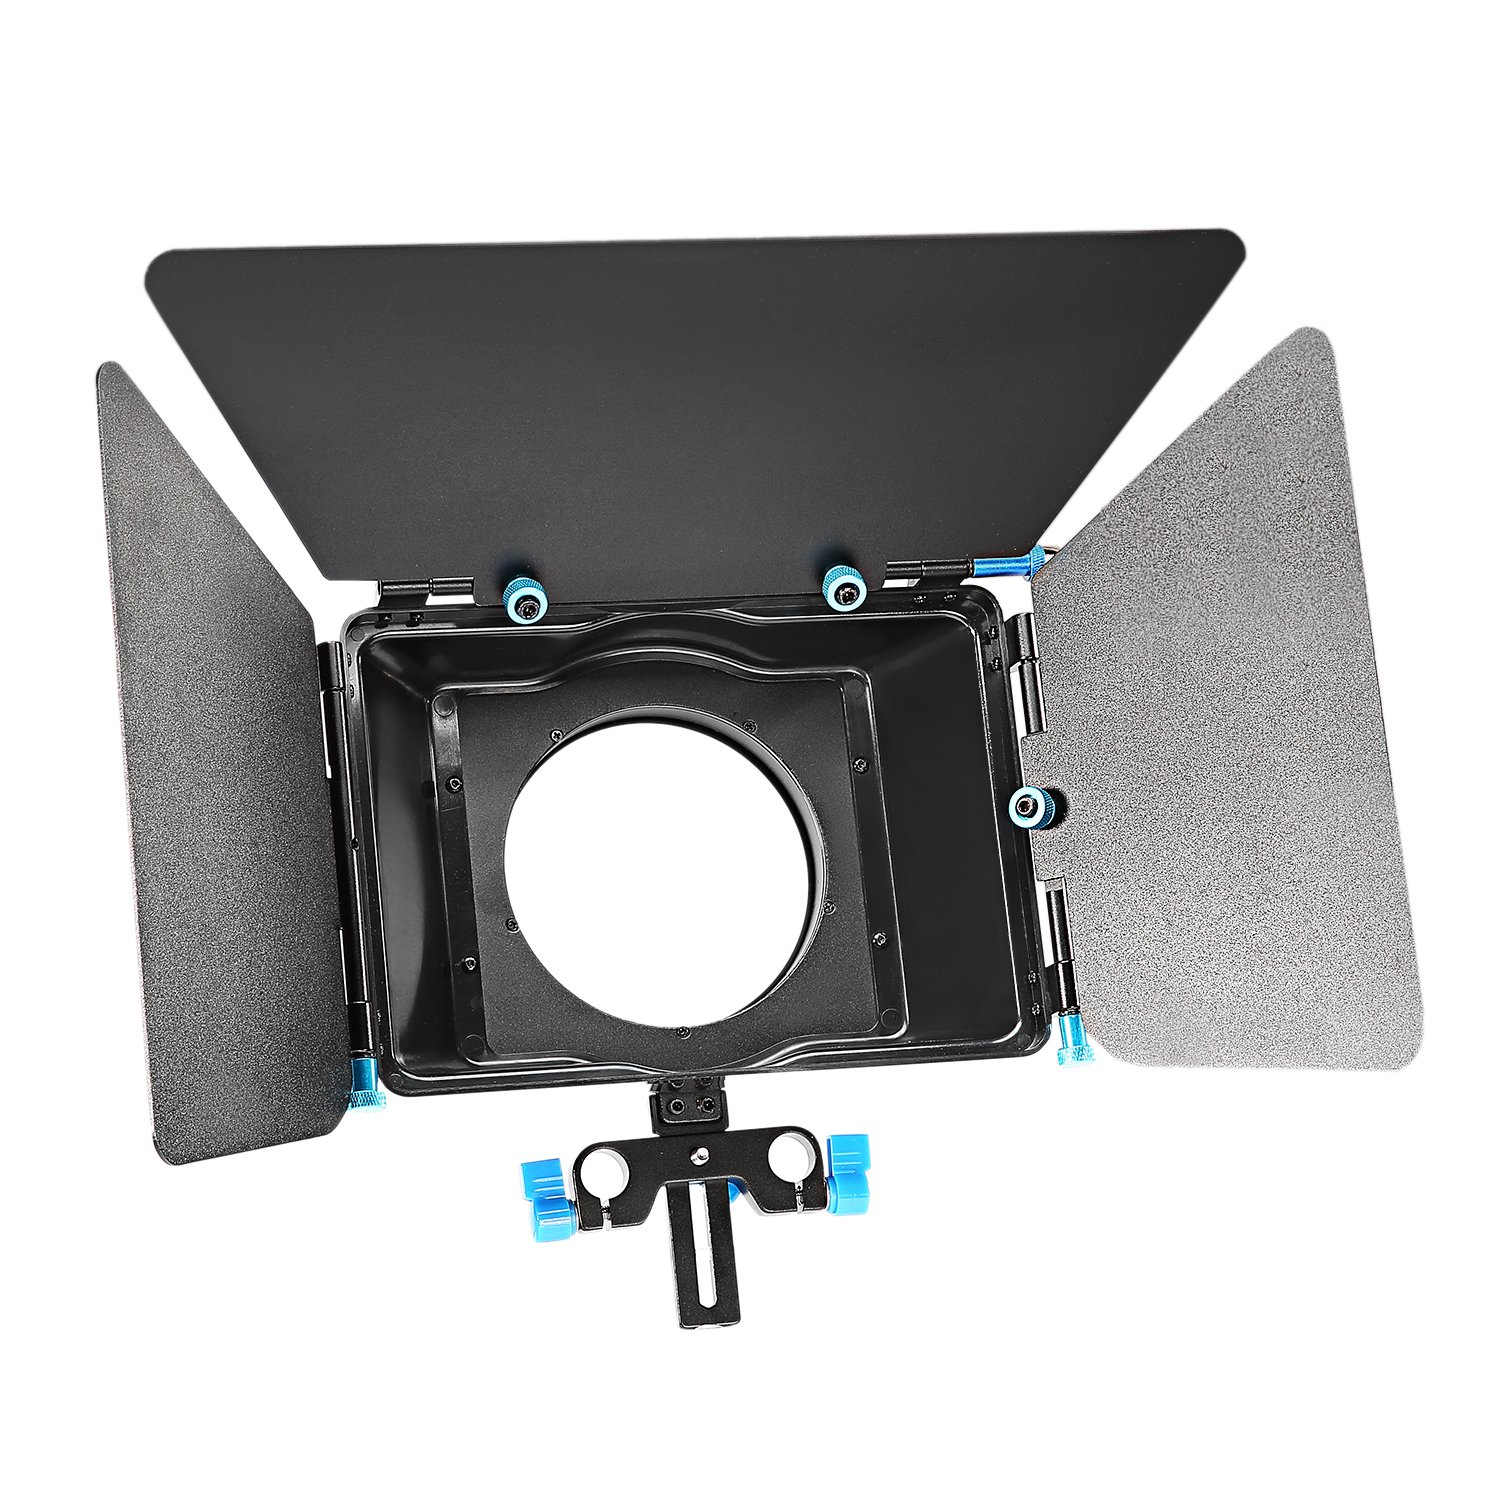 Neewer® Aluminum Alloy Matte Box with Donut Ring, Fit 15mm Rail Rod Rig, for Nikon Canon Sony Fujifilm Olympus DSLR Camera Camcorder DV/HDV/Broadcast Video Movie Film Making System